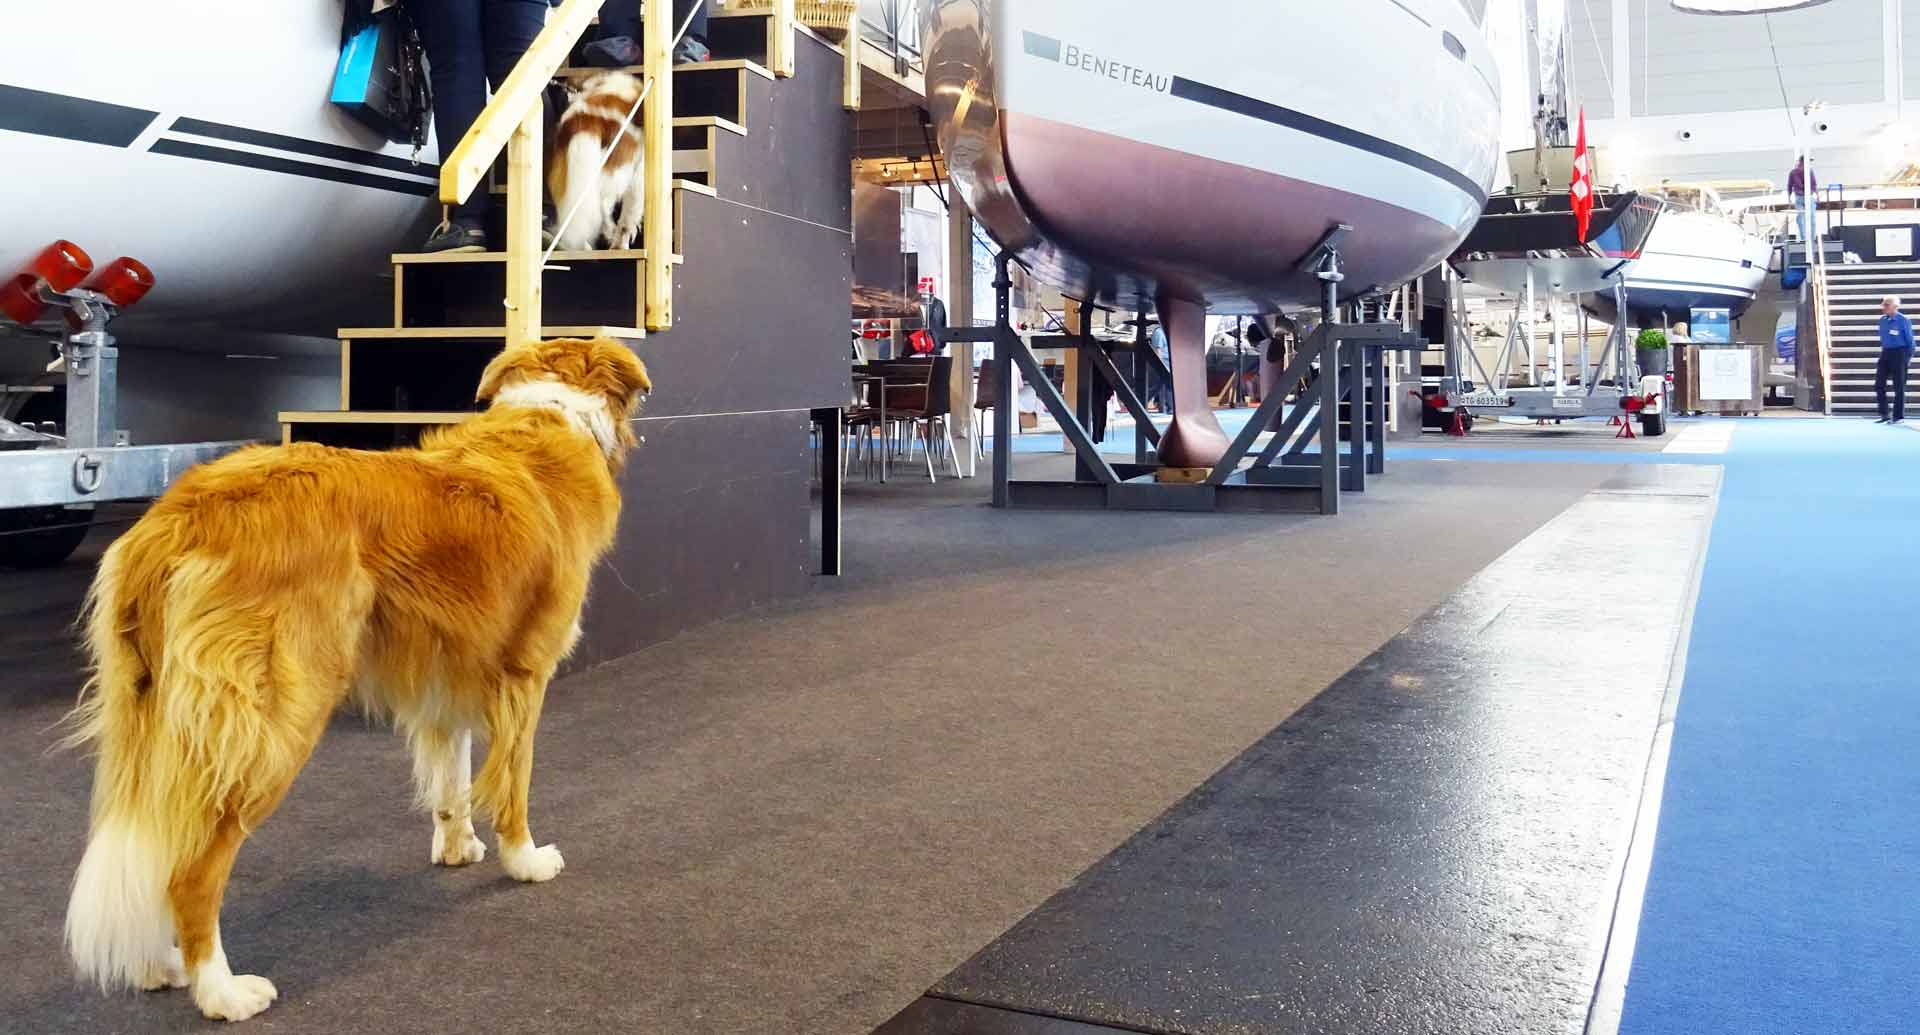 All kinds of Spectators have had their Fun at the Interboot Friedrichshafen